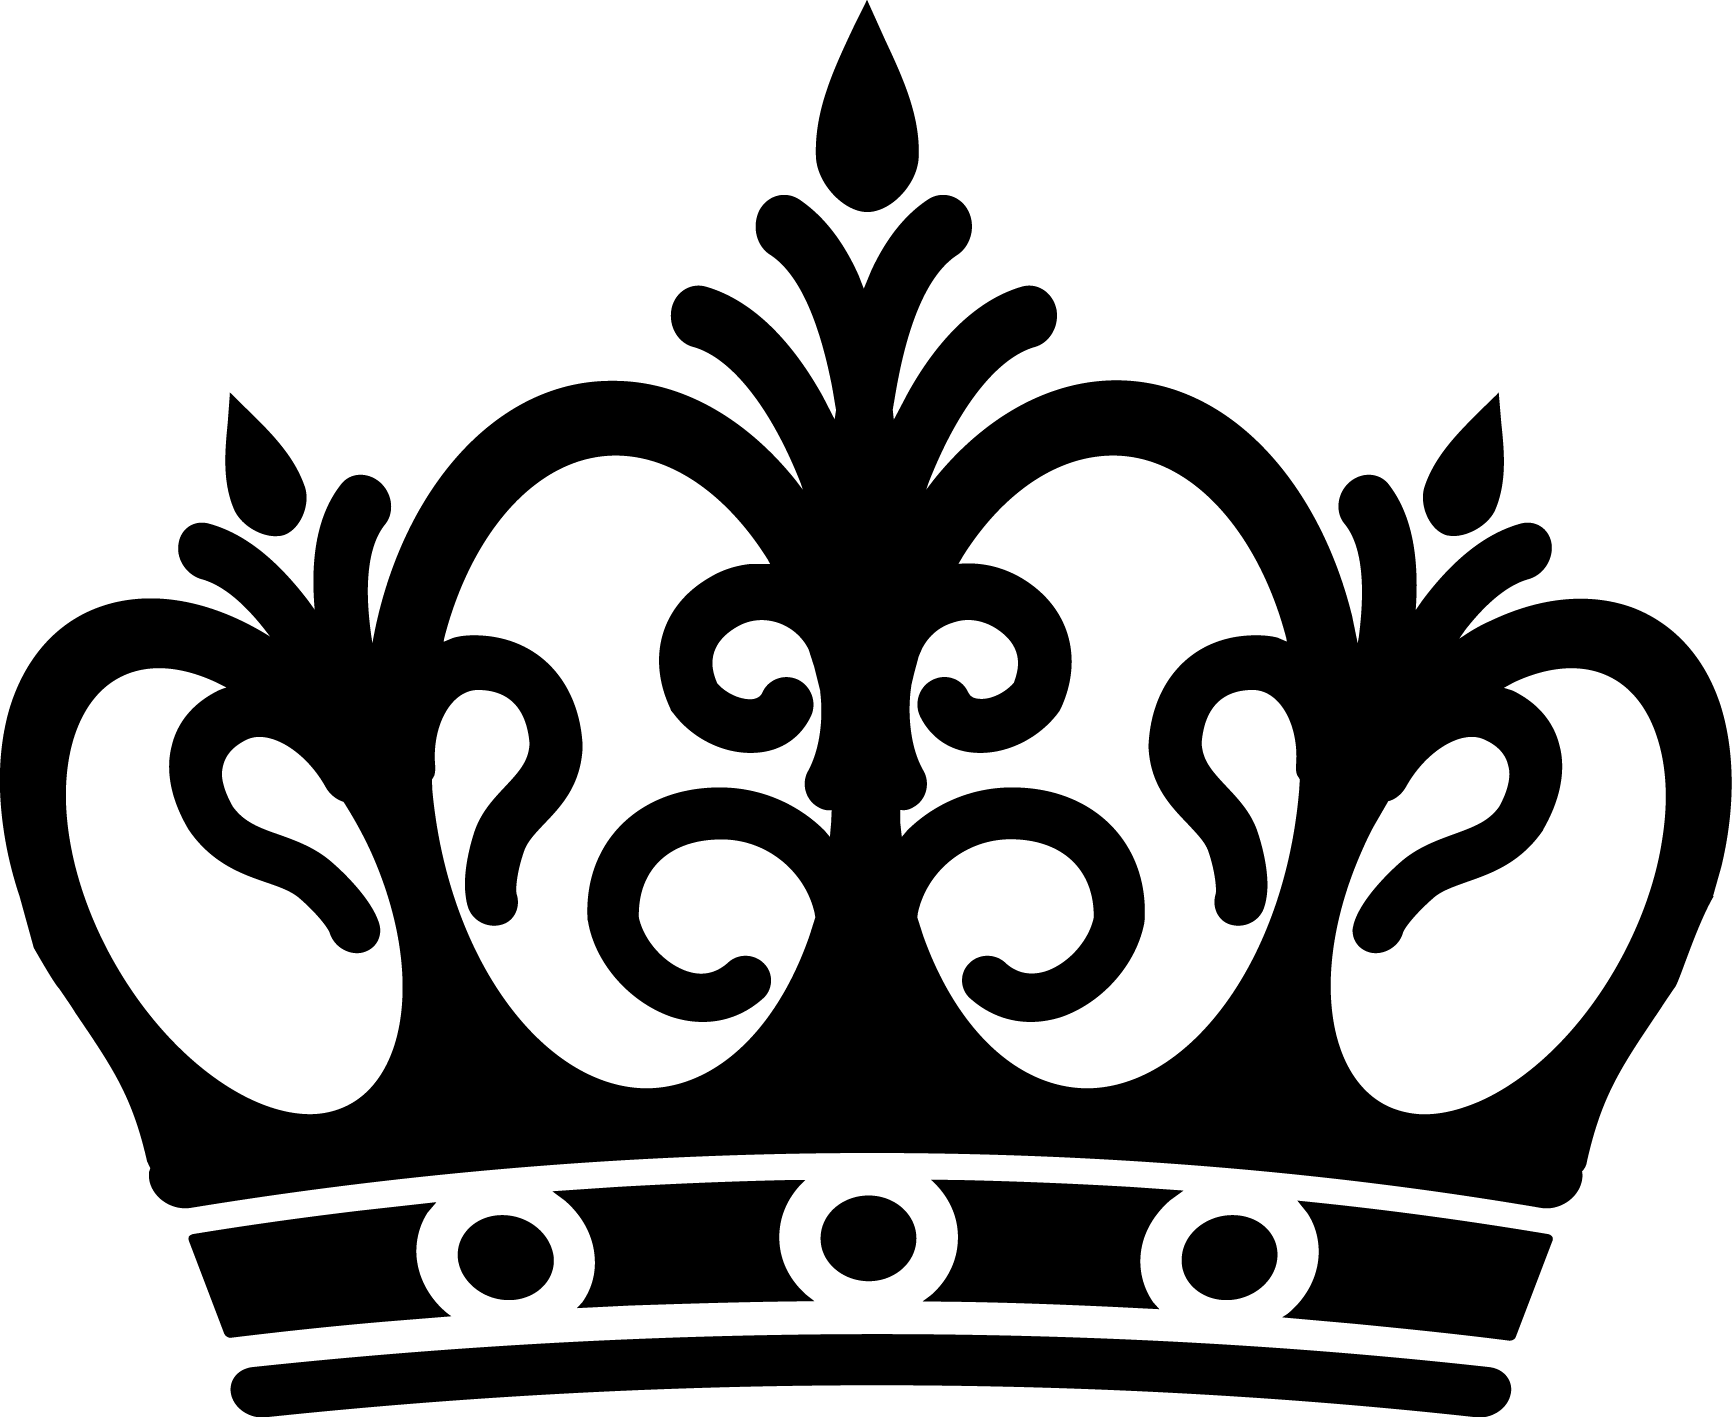 Queen Crown Black And White Images   Pictures   Becuo